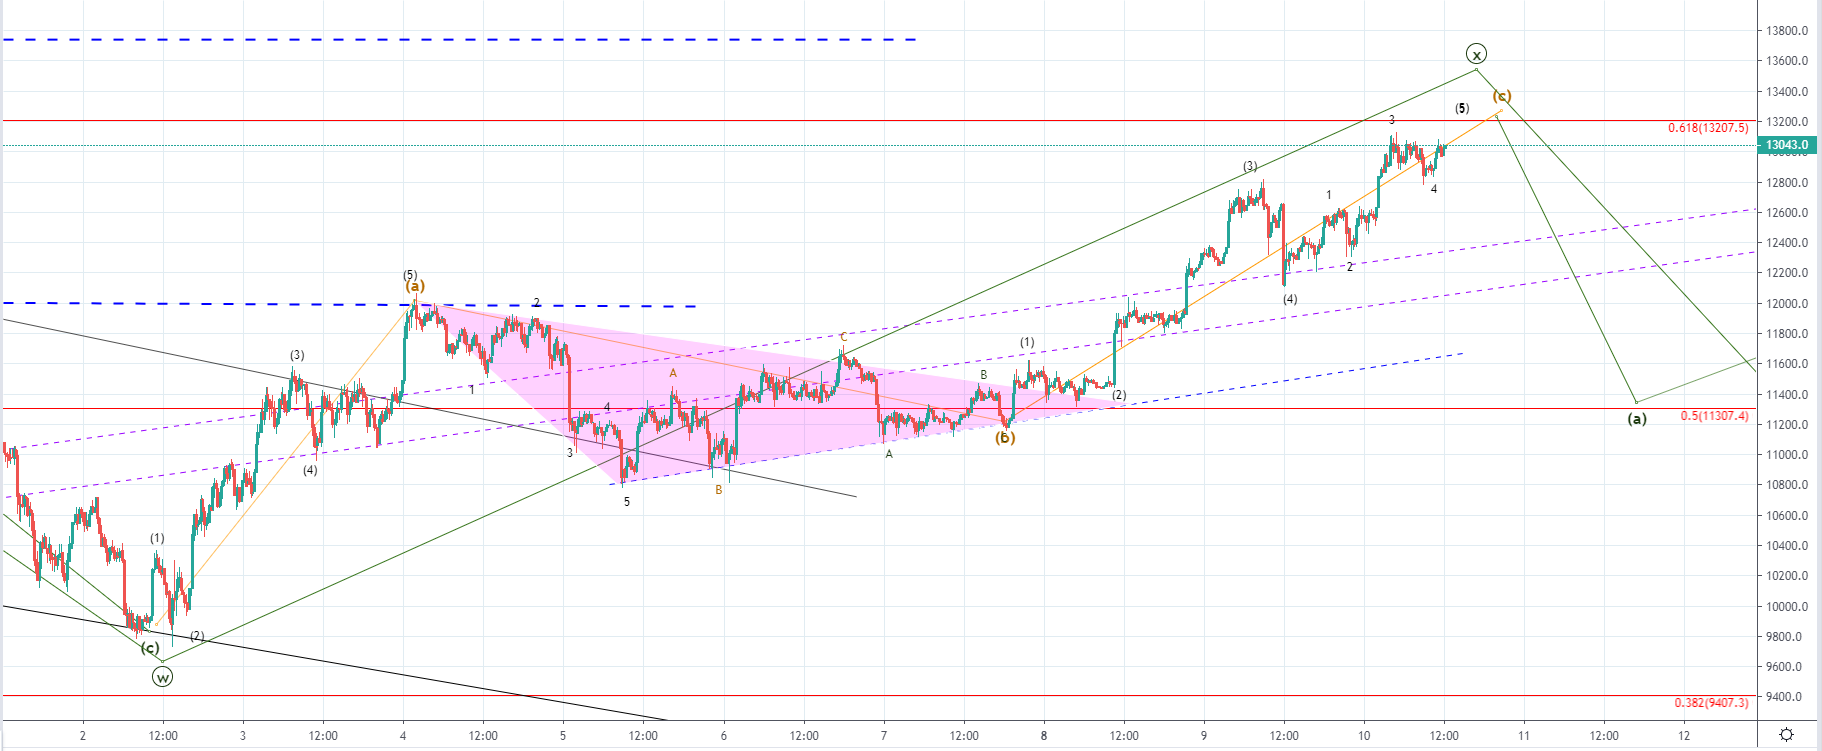 Bitcoin Price Analysis: BTC Breaks $13,000, Significant